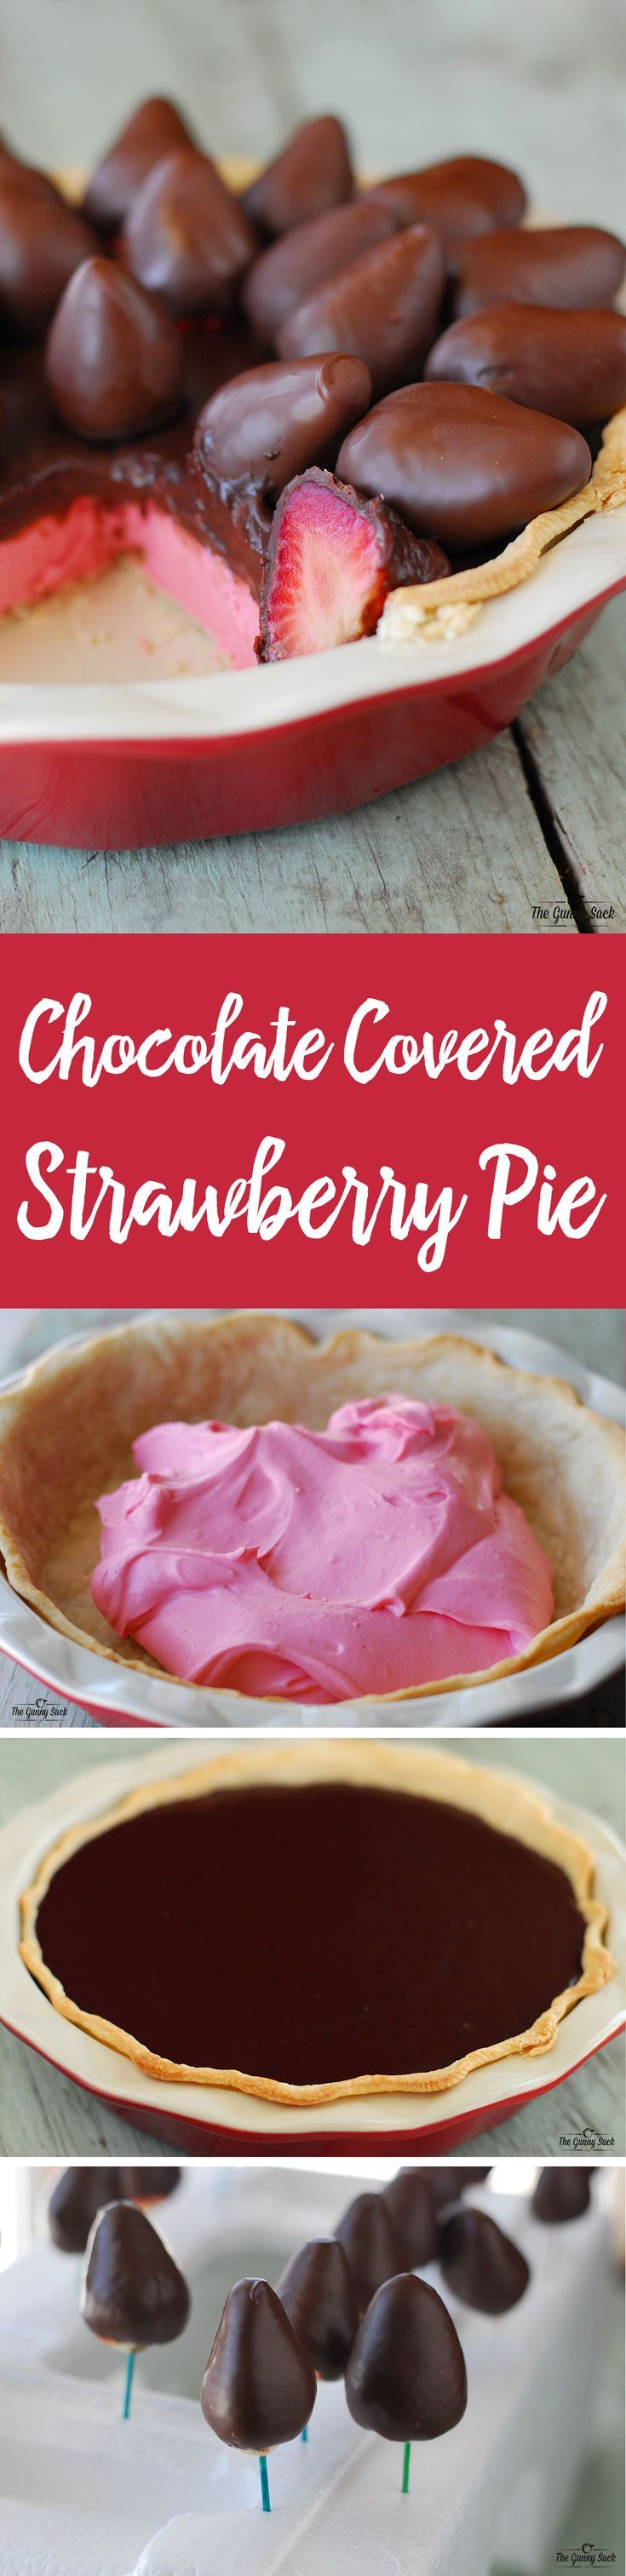 A Chocolate Covered Strawberry Pie is the perfect way to celebrate Valentine's Day! This recipe includes strawberry silk, chocolate ganache and chocolate covered strawberries.